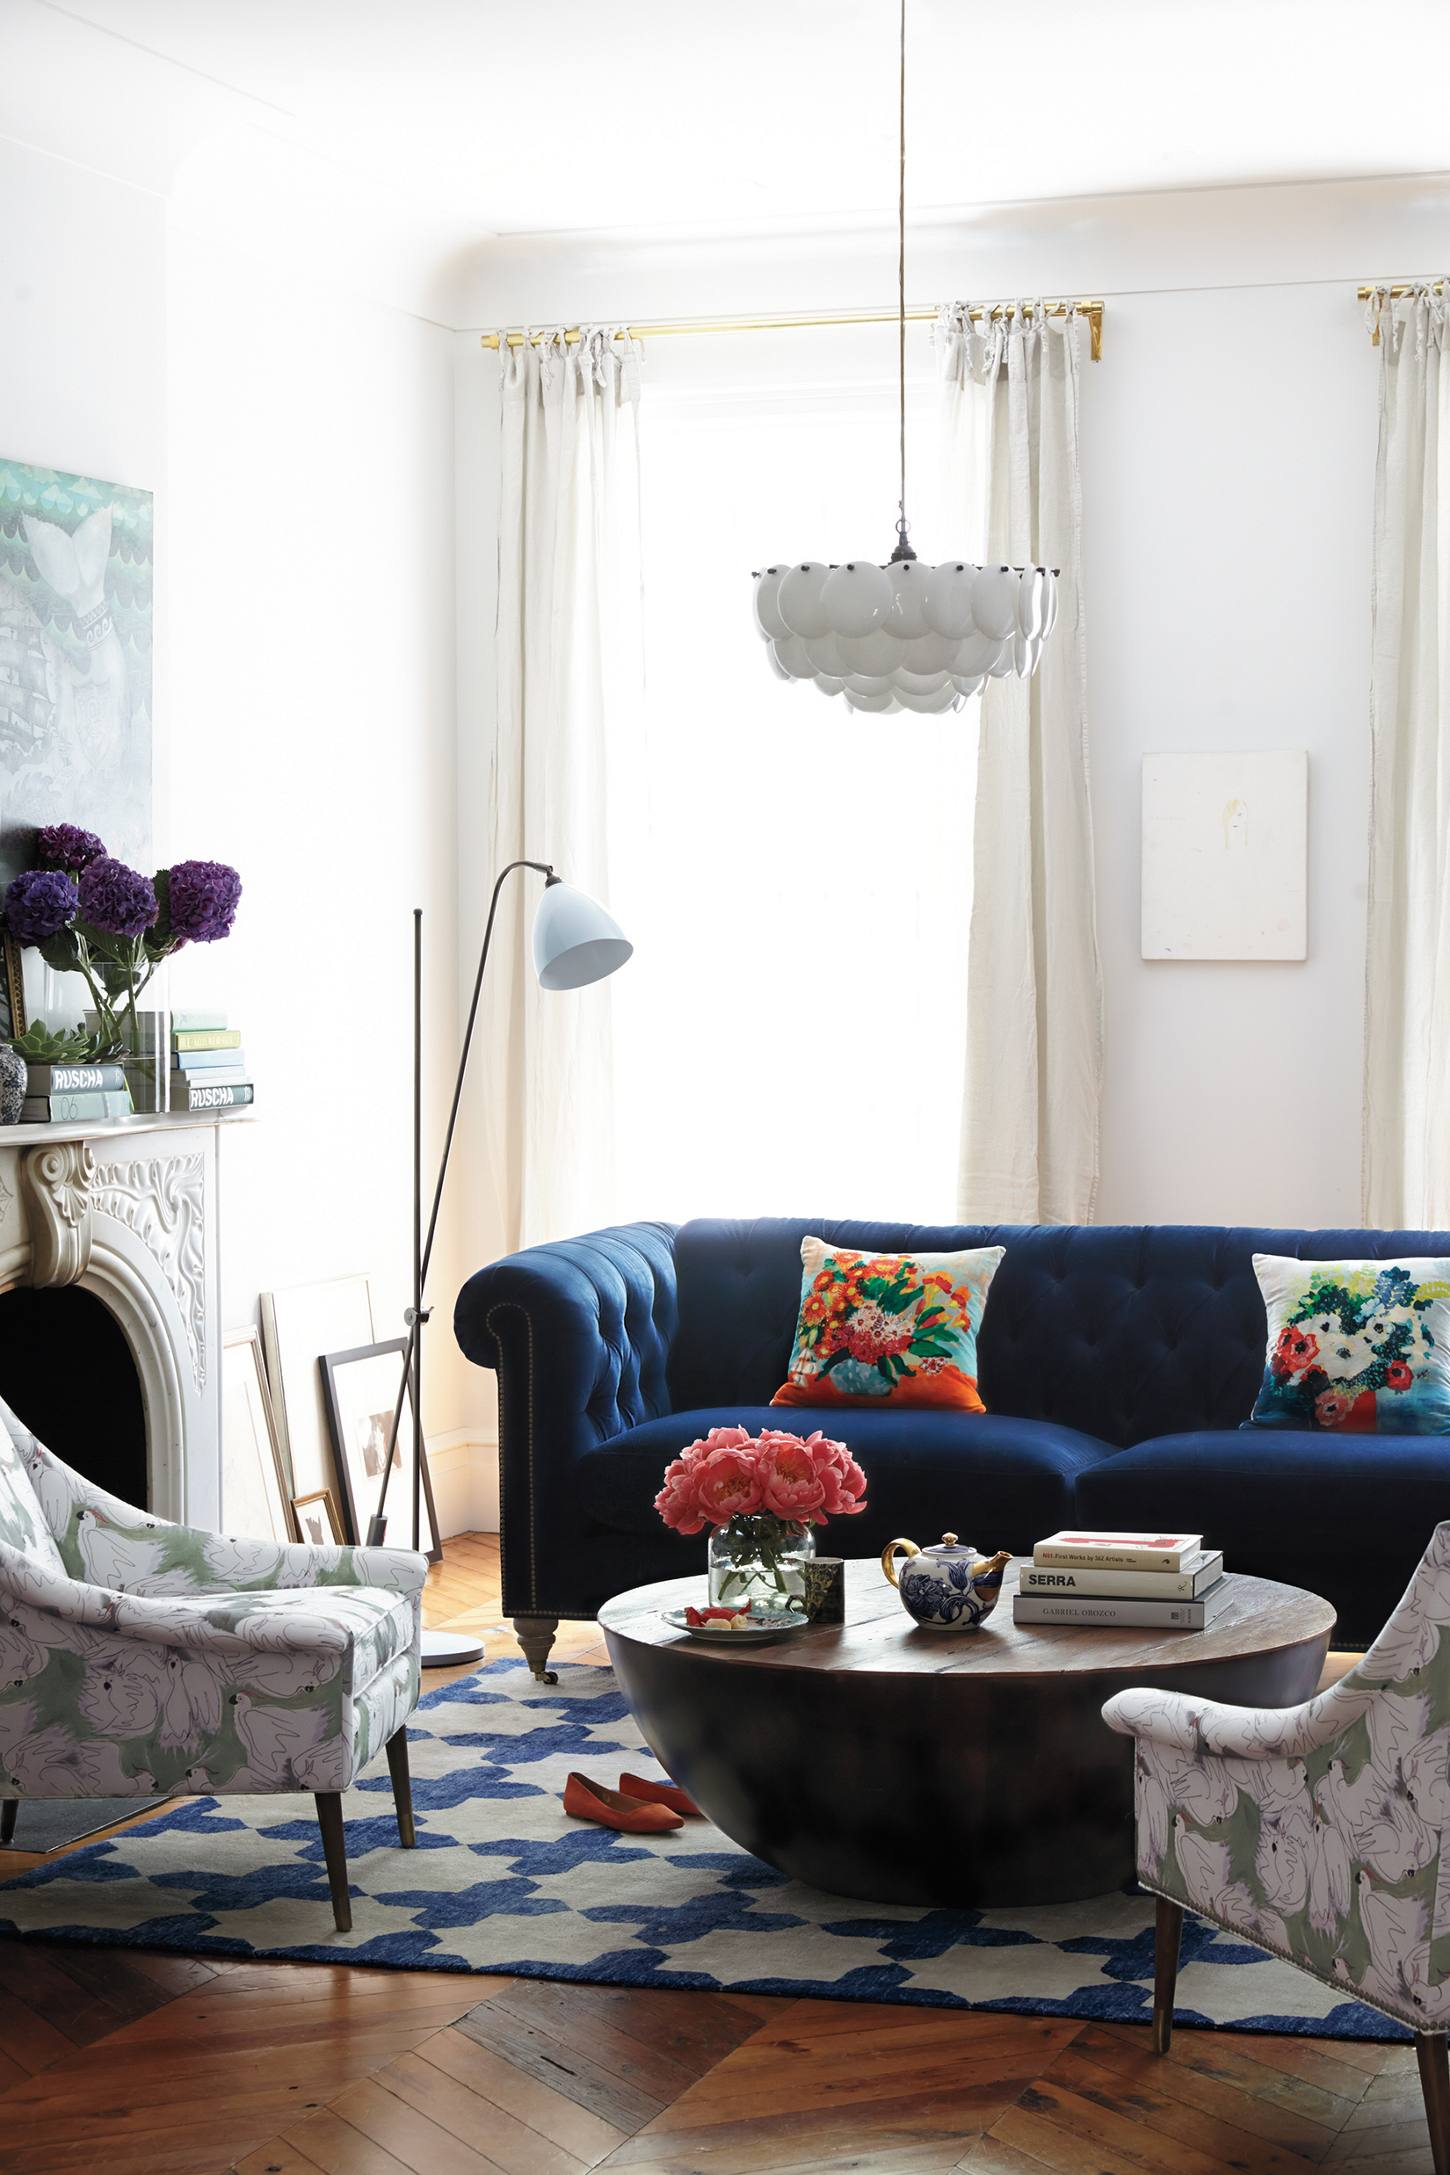 Shop this Blue Velvet Sofa Lyle Chesterfield Sofa from Anthropologie